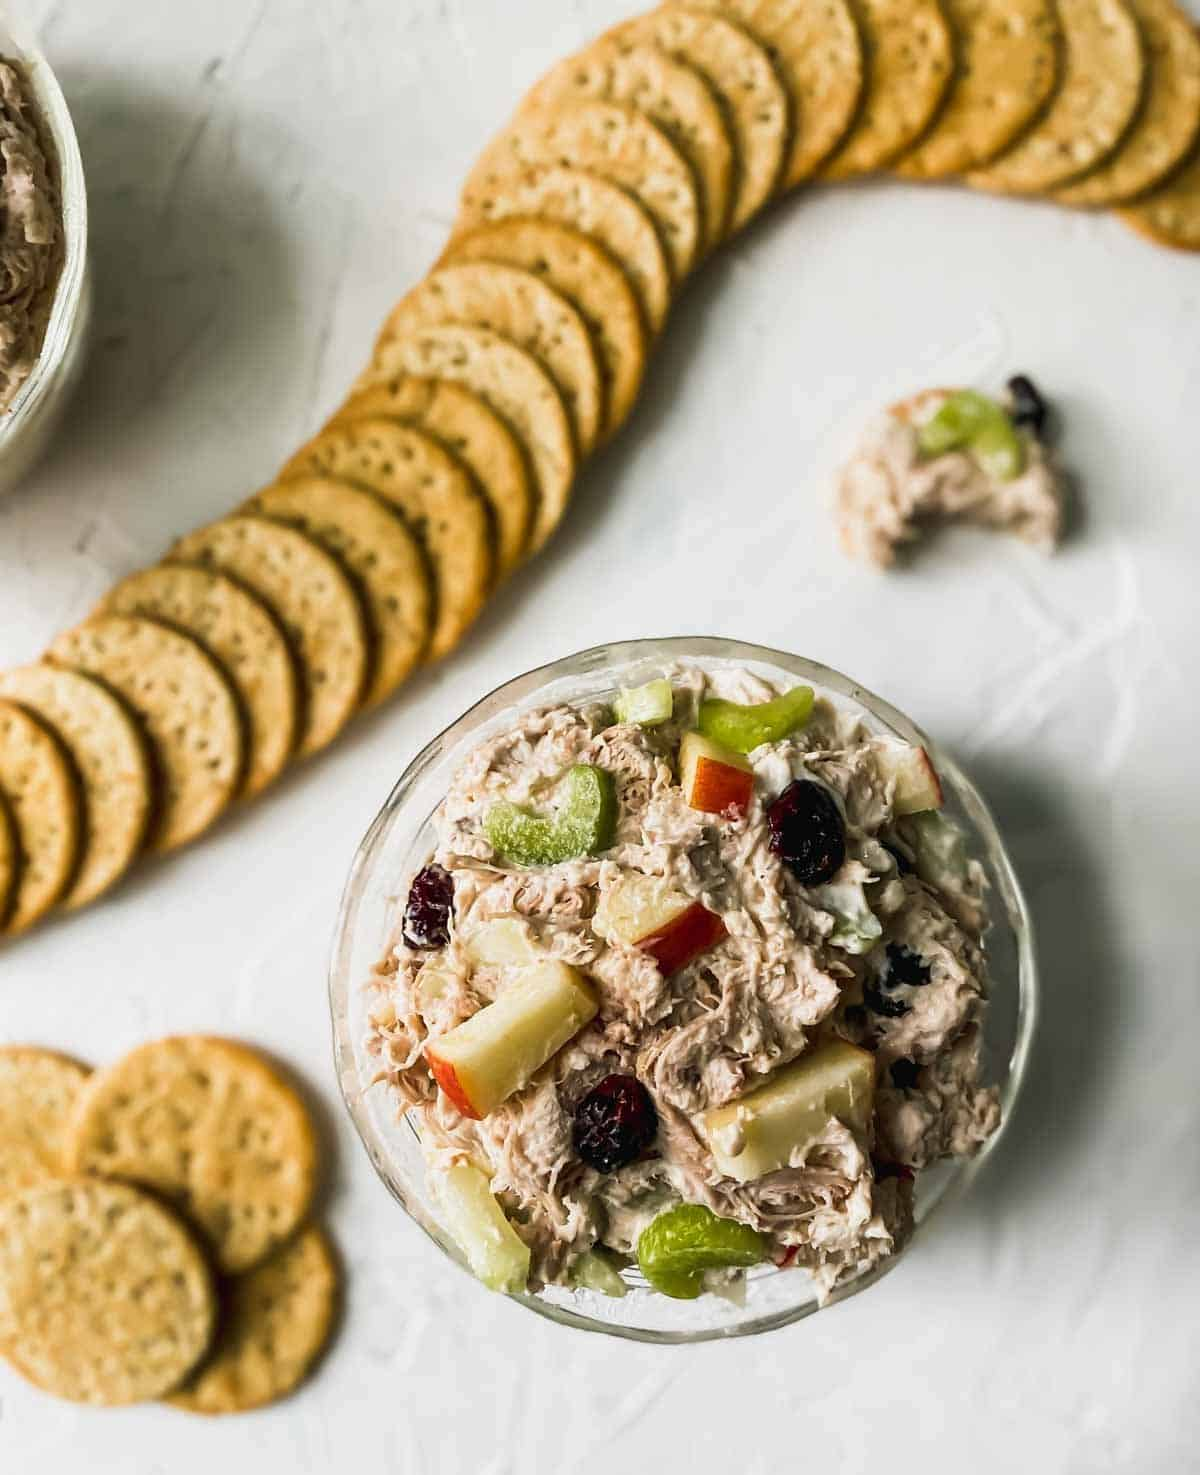 shredded chicken salad with cranberries and apples in a glass bowl with crackers around it